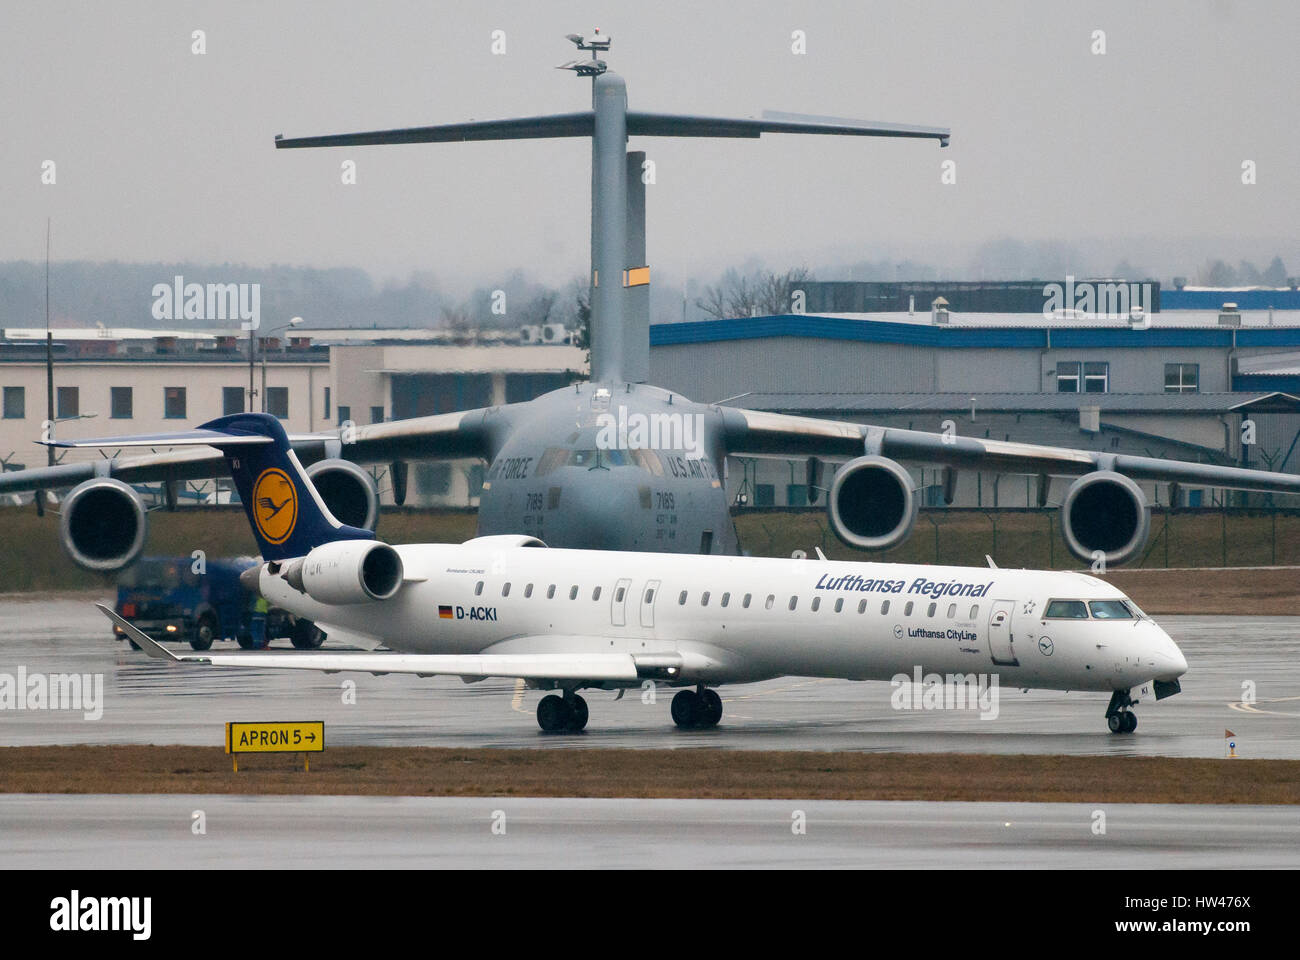 Gdansk, Poland. 17th Mar, 2017. Luftansa Regional aircraft Bombardier CRJ-900 and United States Air Force large - Stock Image